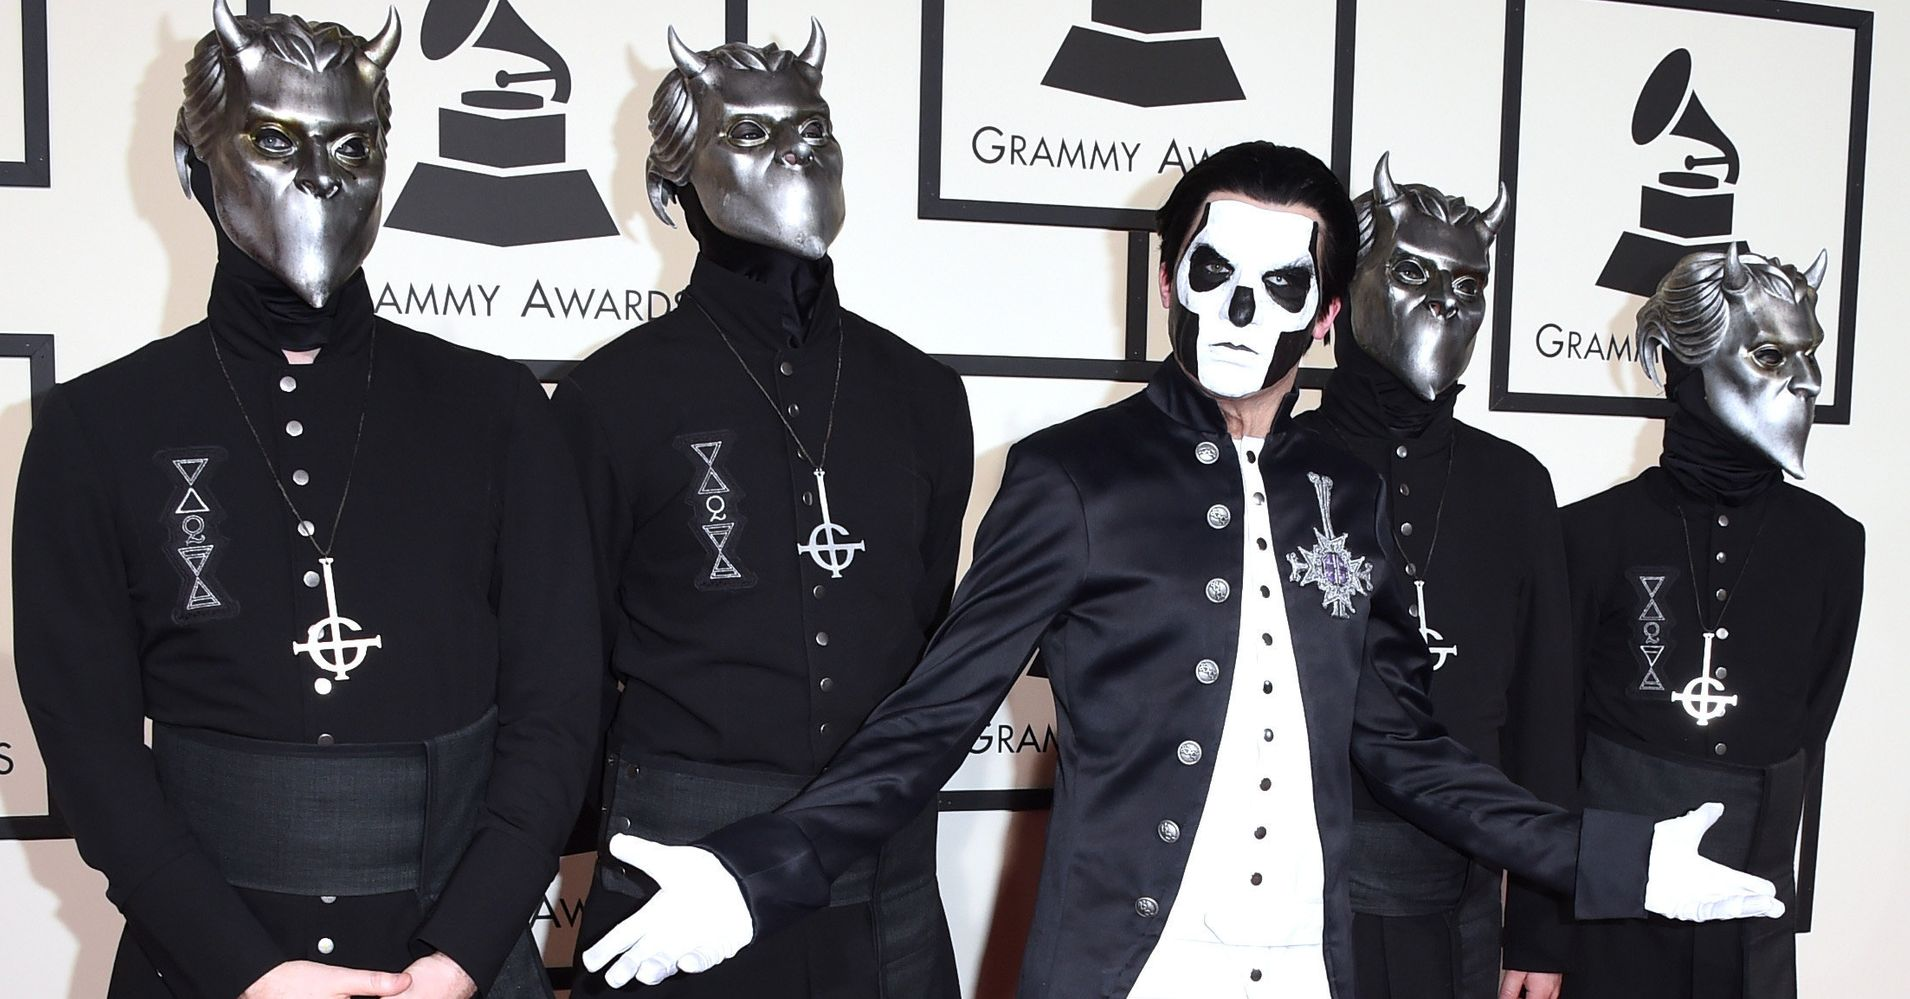 Swedish Band Ghost Were The Talk Of The Grammys With Their Unique ...